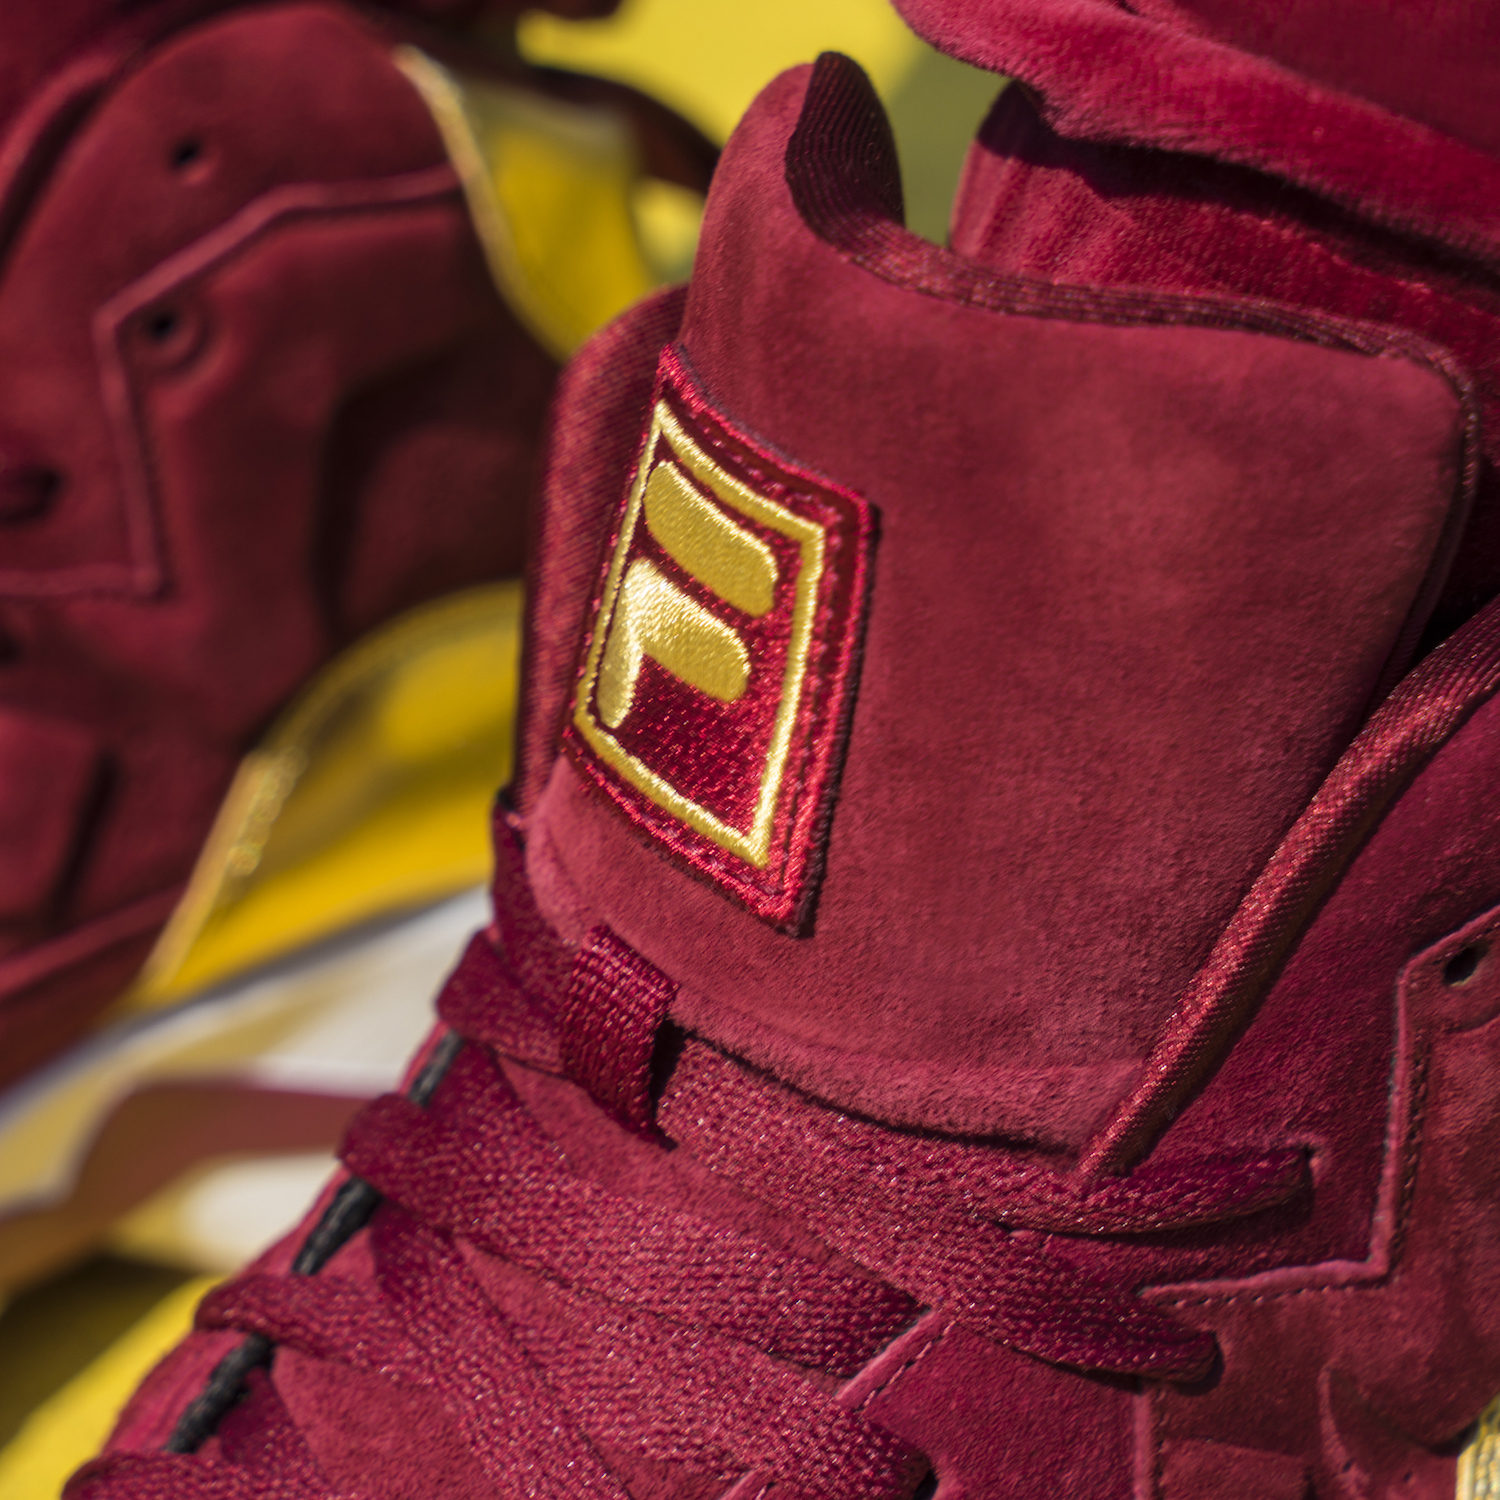 FILA MB royal beginnings 1